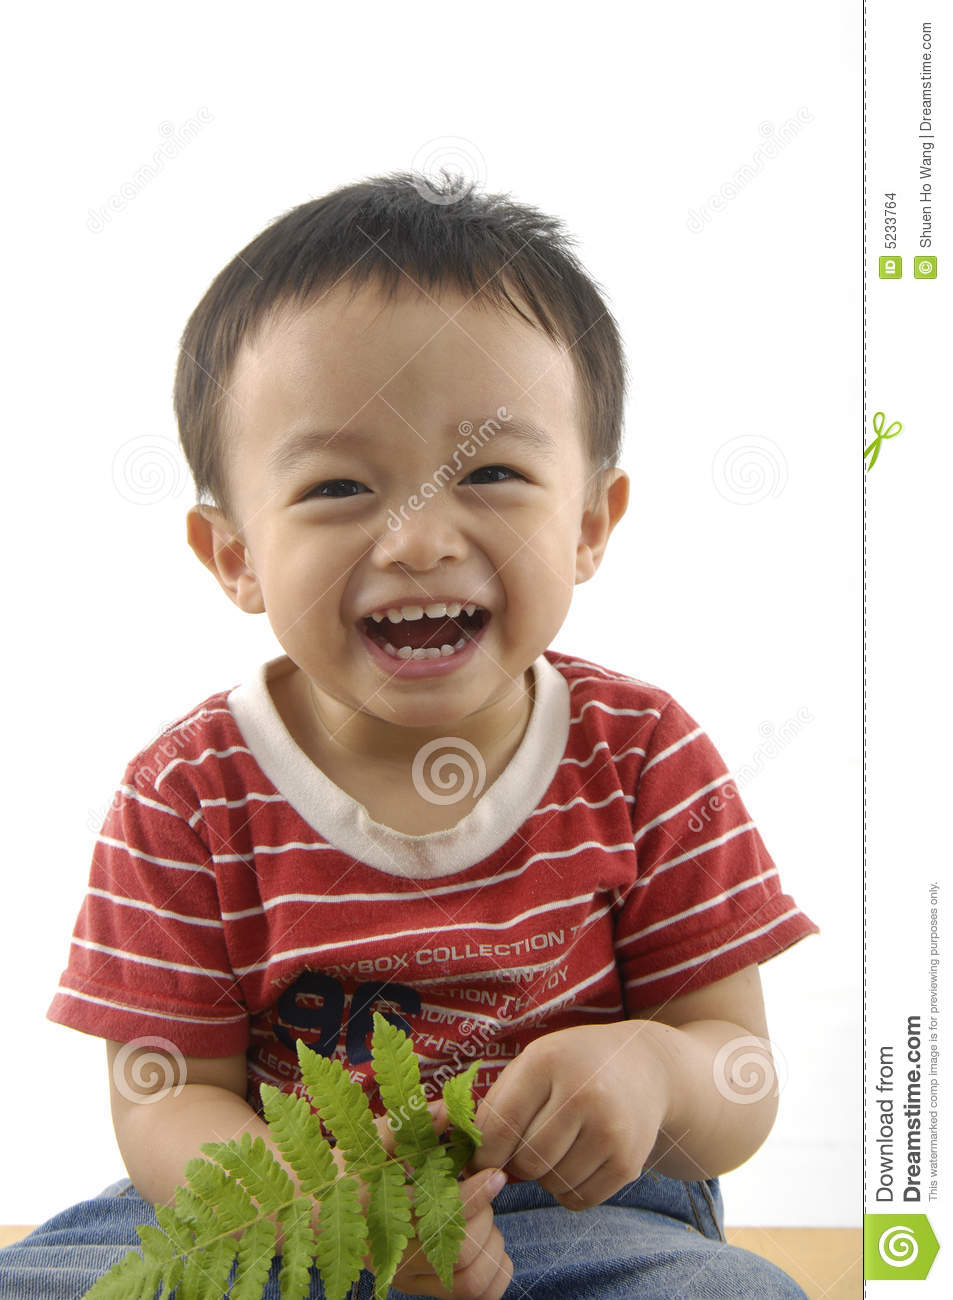 Cute Asian Kids Stock Images - Image: 5233764 Cute Asian White Baby